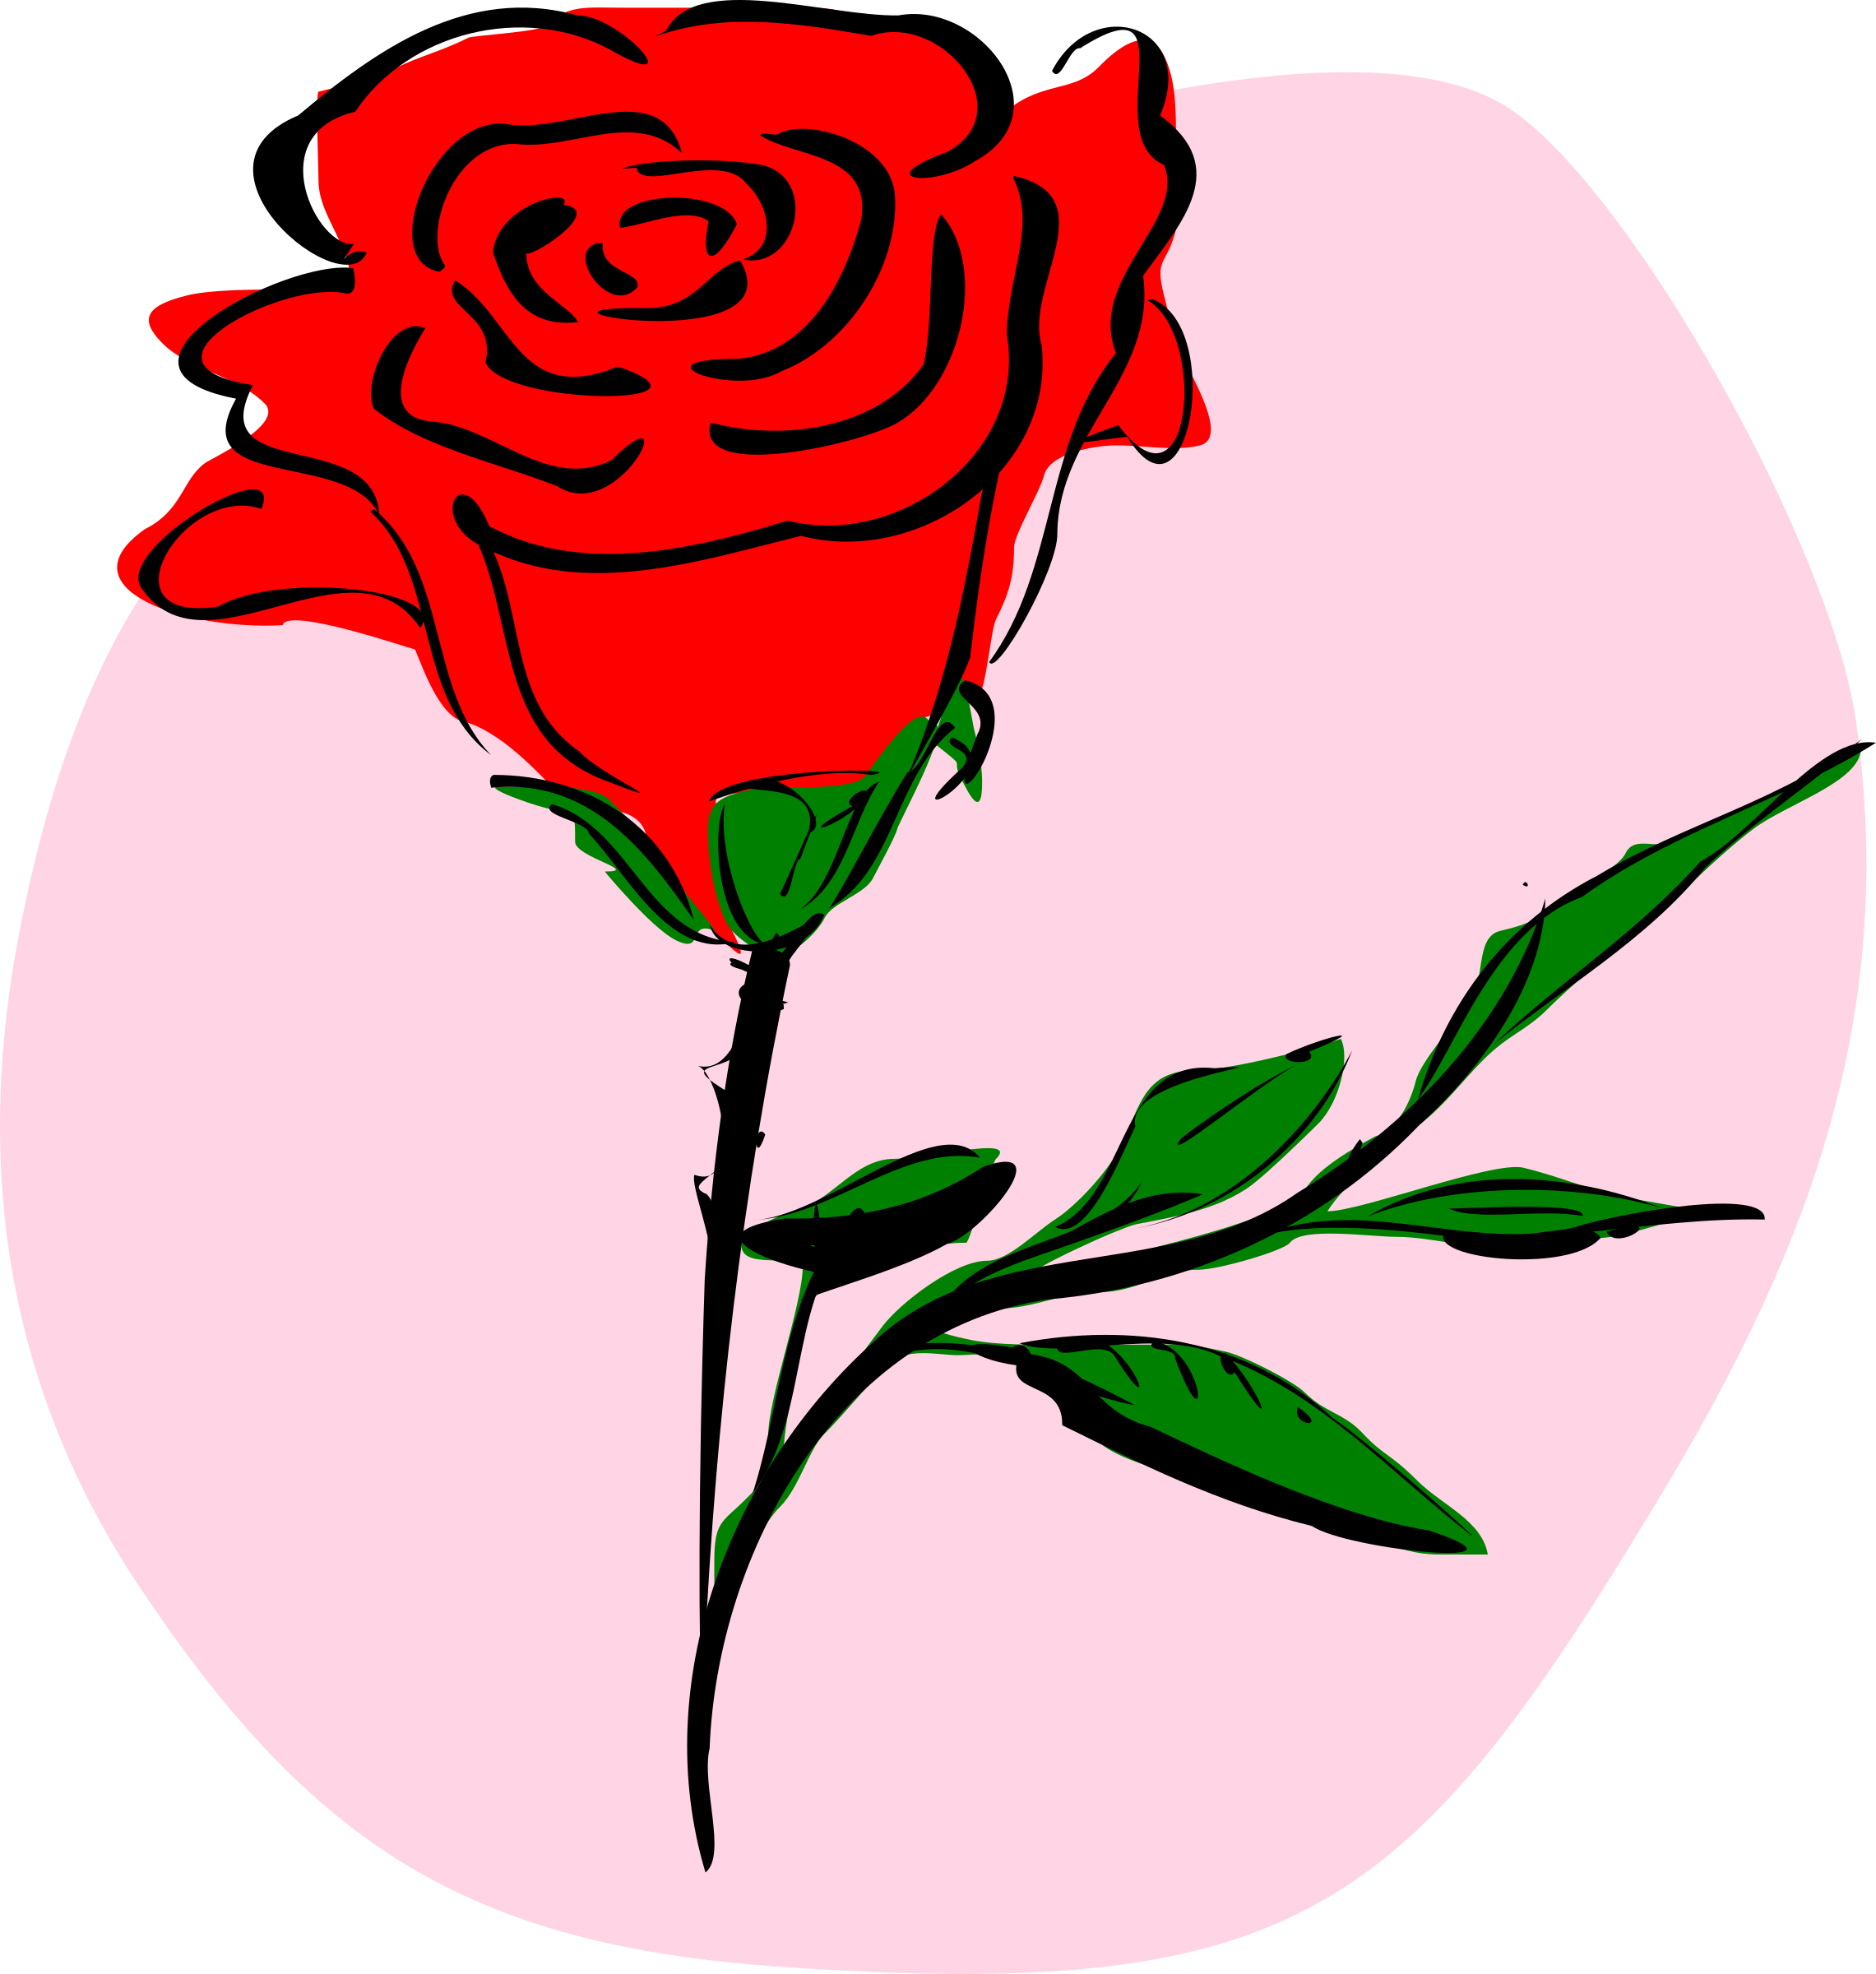 Rose clipart cartoon. Valentines day roses at